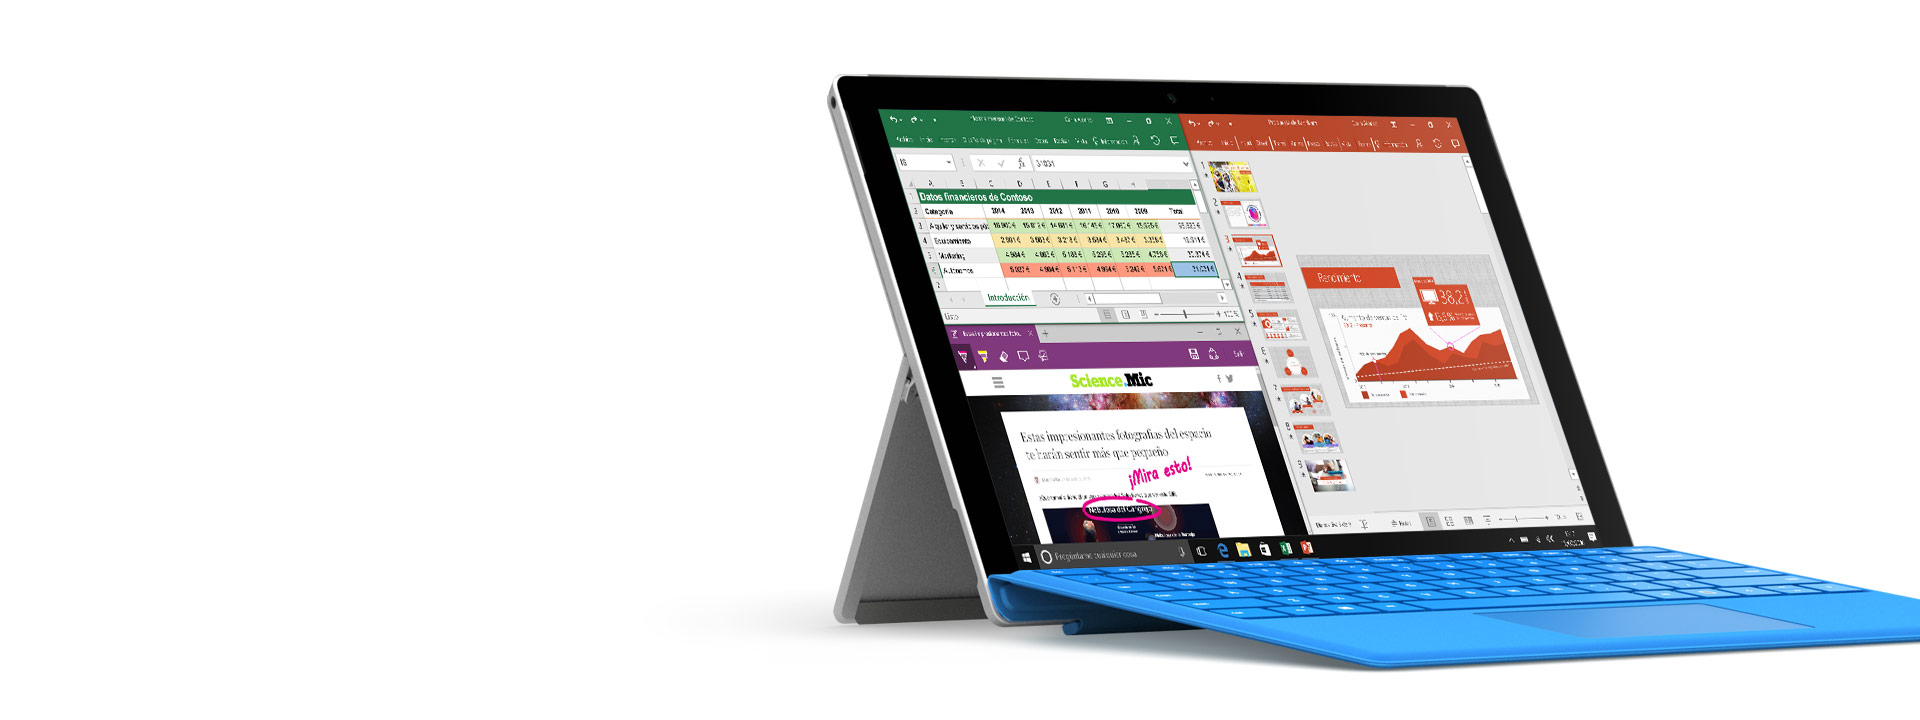 Surface Pro 4 con Office en la pantalla